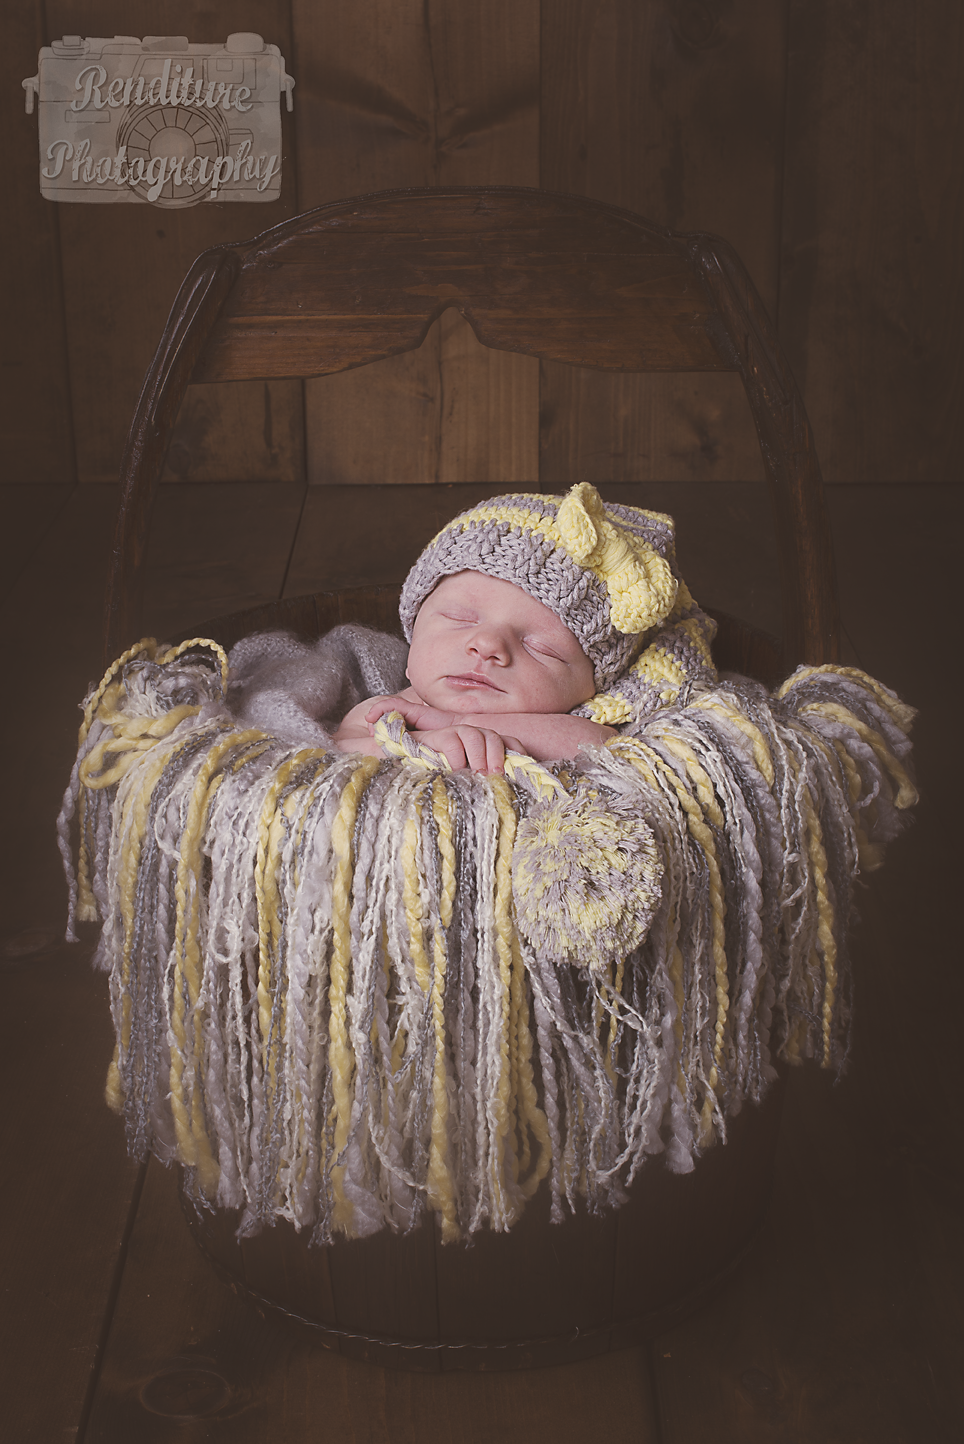 Saskatoon-Newborn-Family-Renditure-Baby-Photography-Photographer-Maternity-Pregnancy-Saskatchewan-160mFBR.png